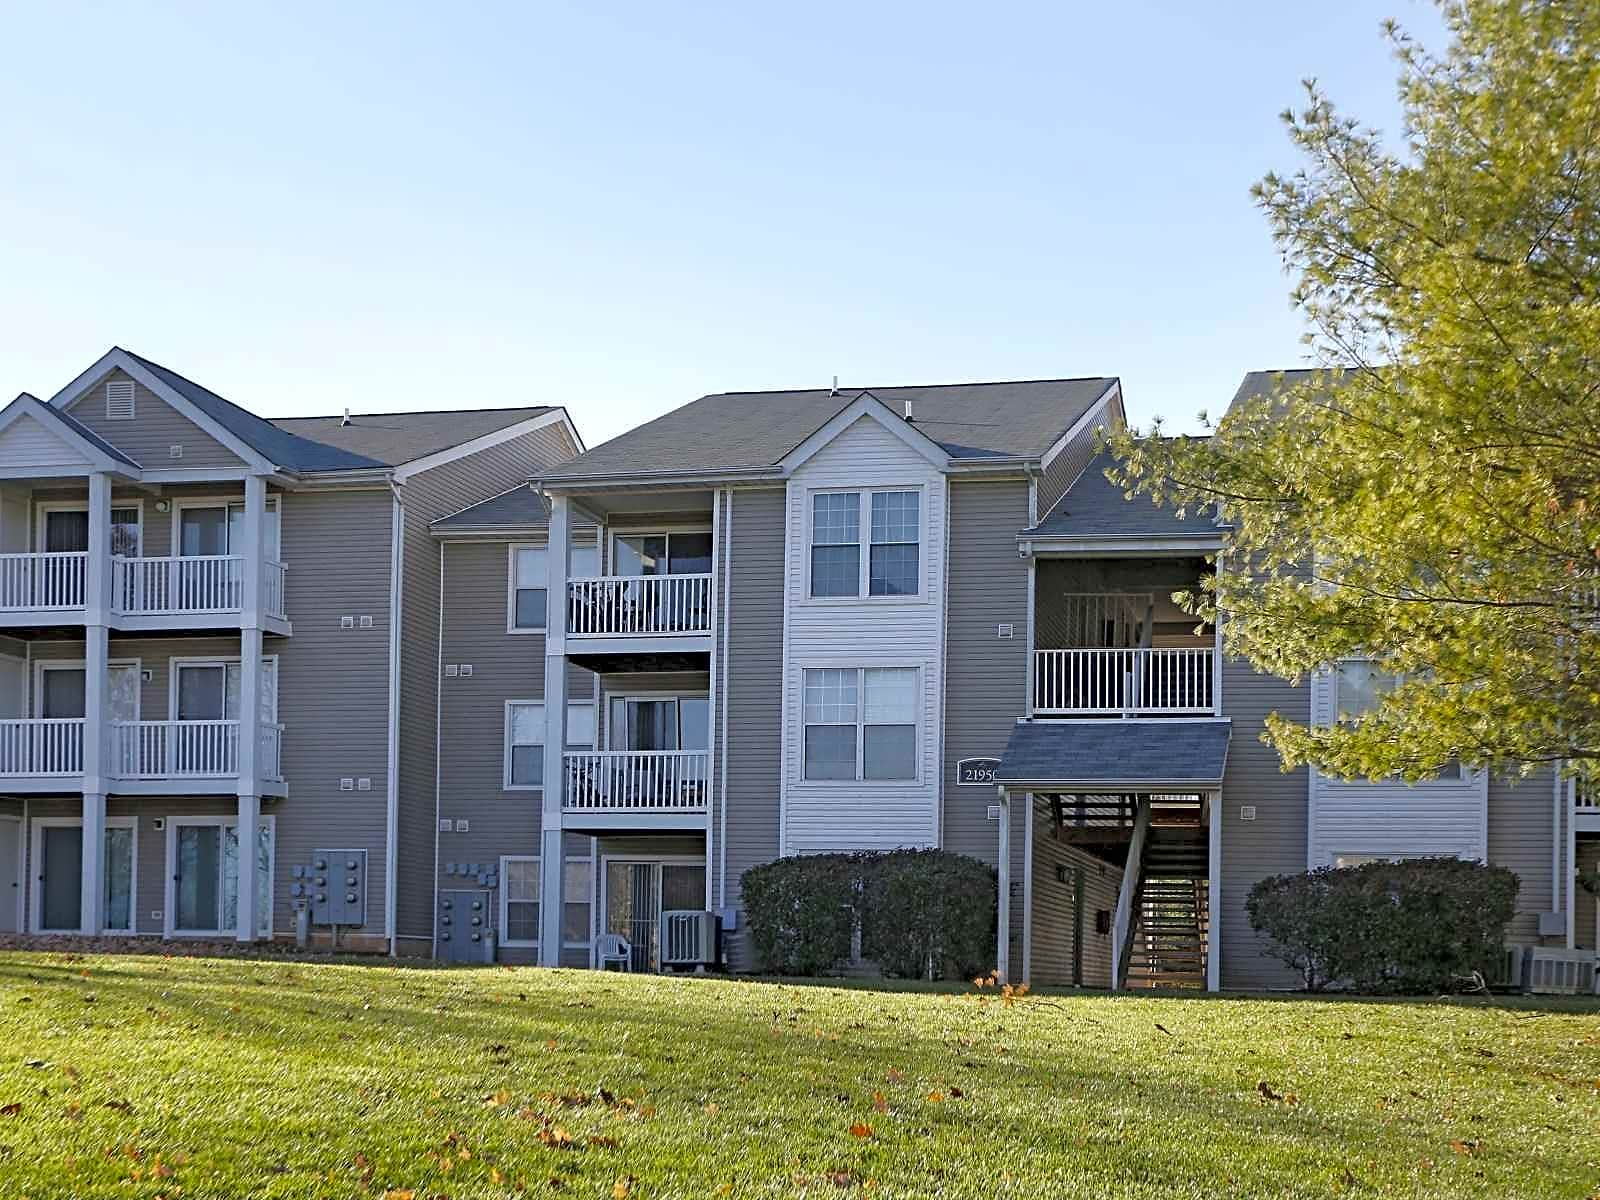 Apartments and houses for rent in sterling for 20576 idle brook terrace potomac falls va 20165